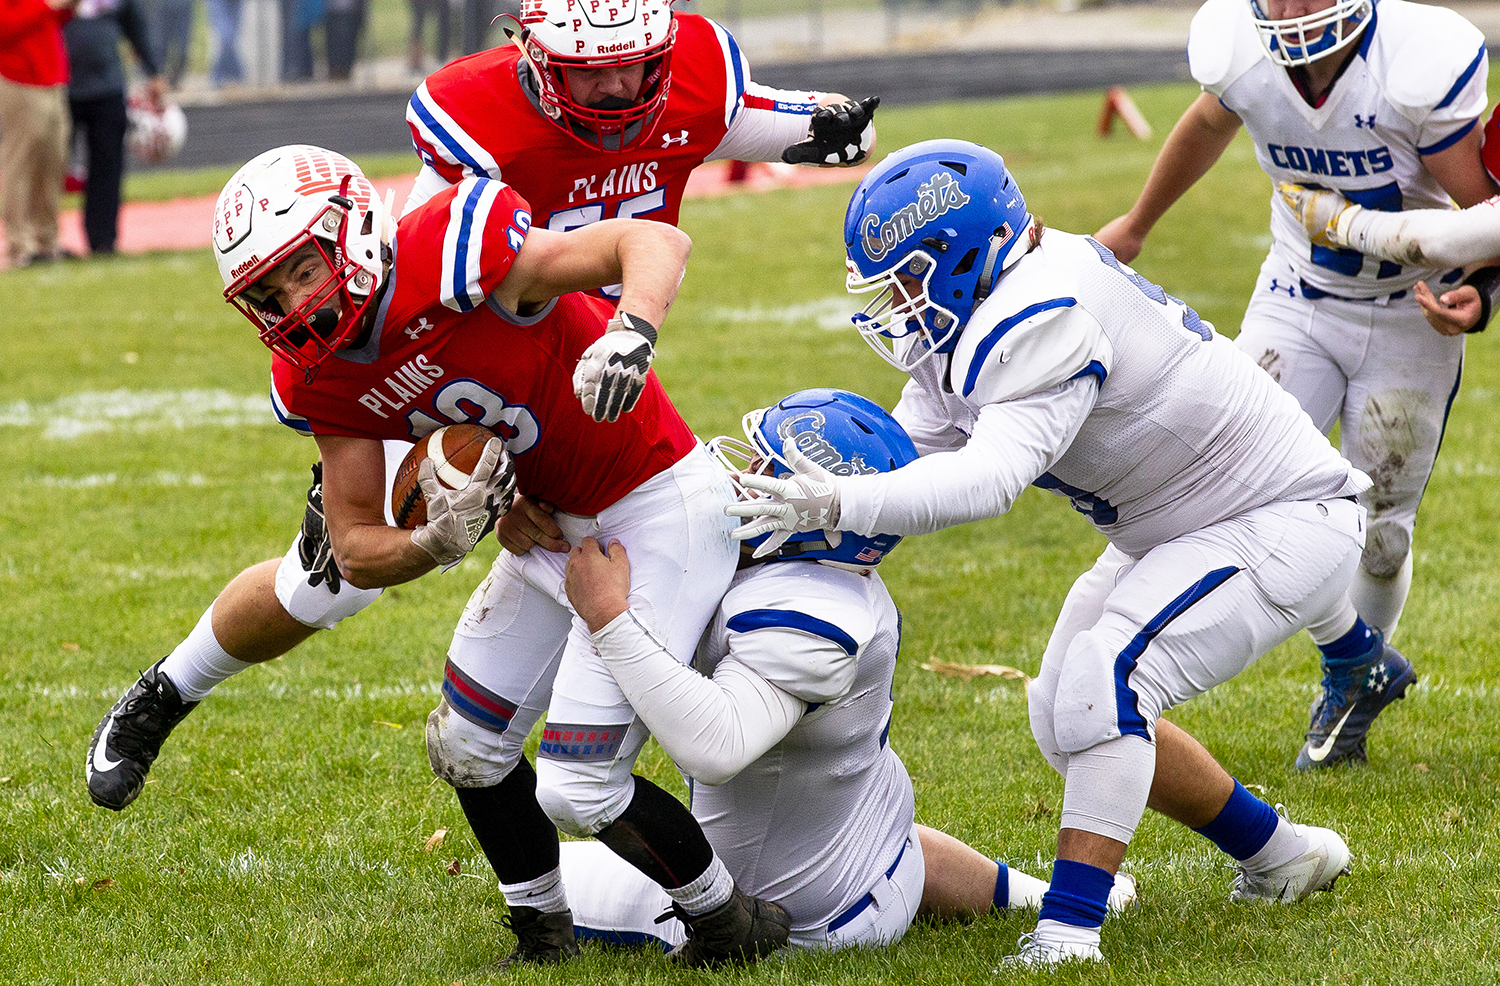 Pleasant Plains' Lucas Western cannot escape the grasp of Greenville's Harley Feaster in the Class 2A playoff game Saturday, Nov. 3, 2018 at Pleasant Plains High School in Pleasant Plains, Ill. Western was held to 86 yard rushing.[Rich Saal/The State Journal-Register]